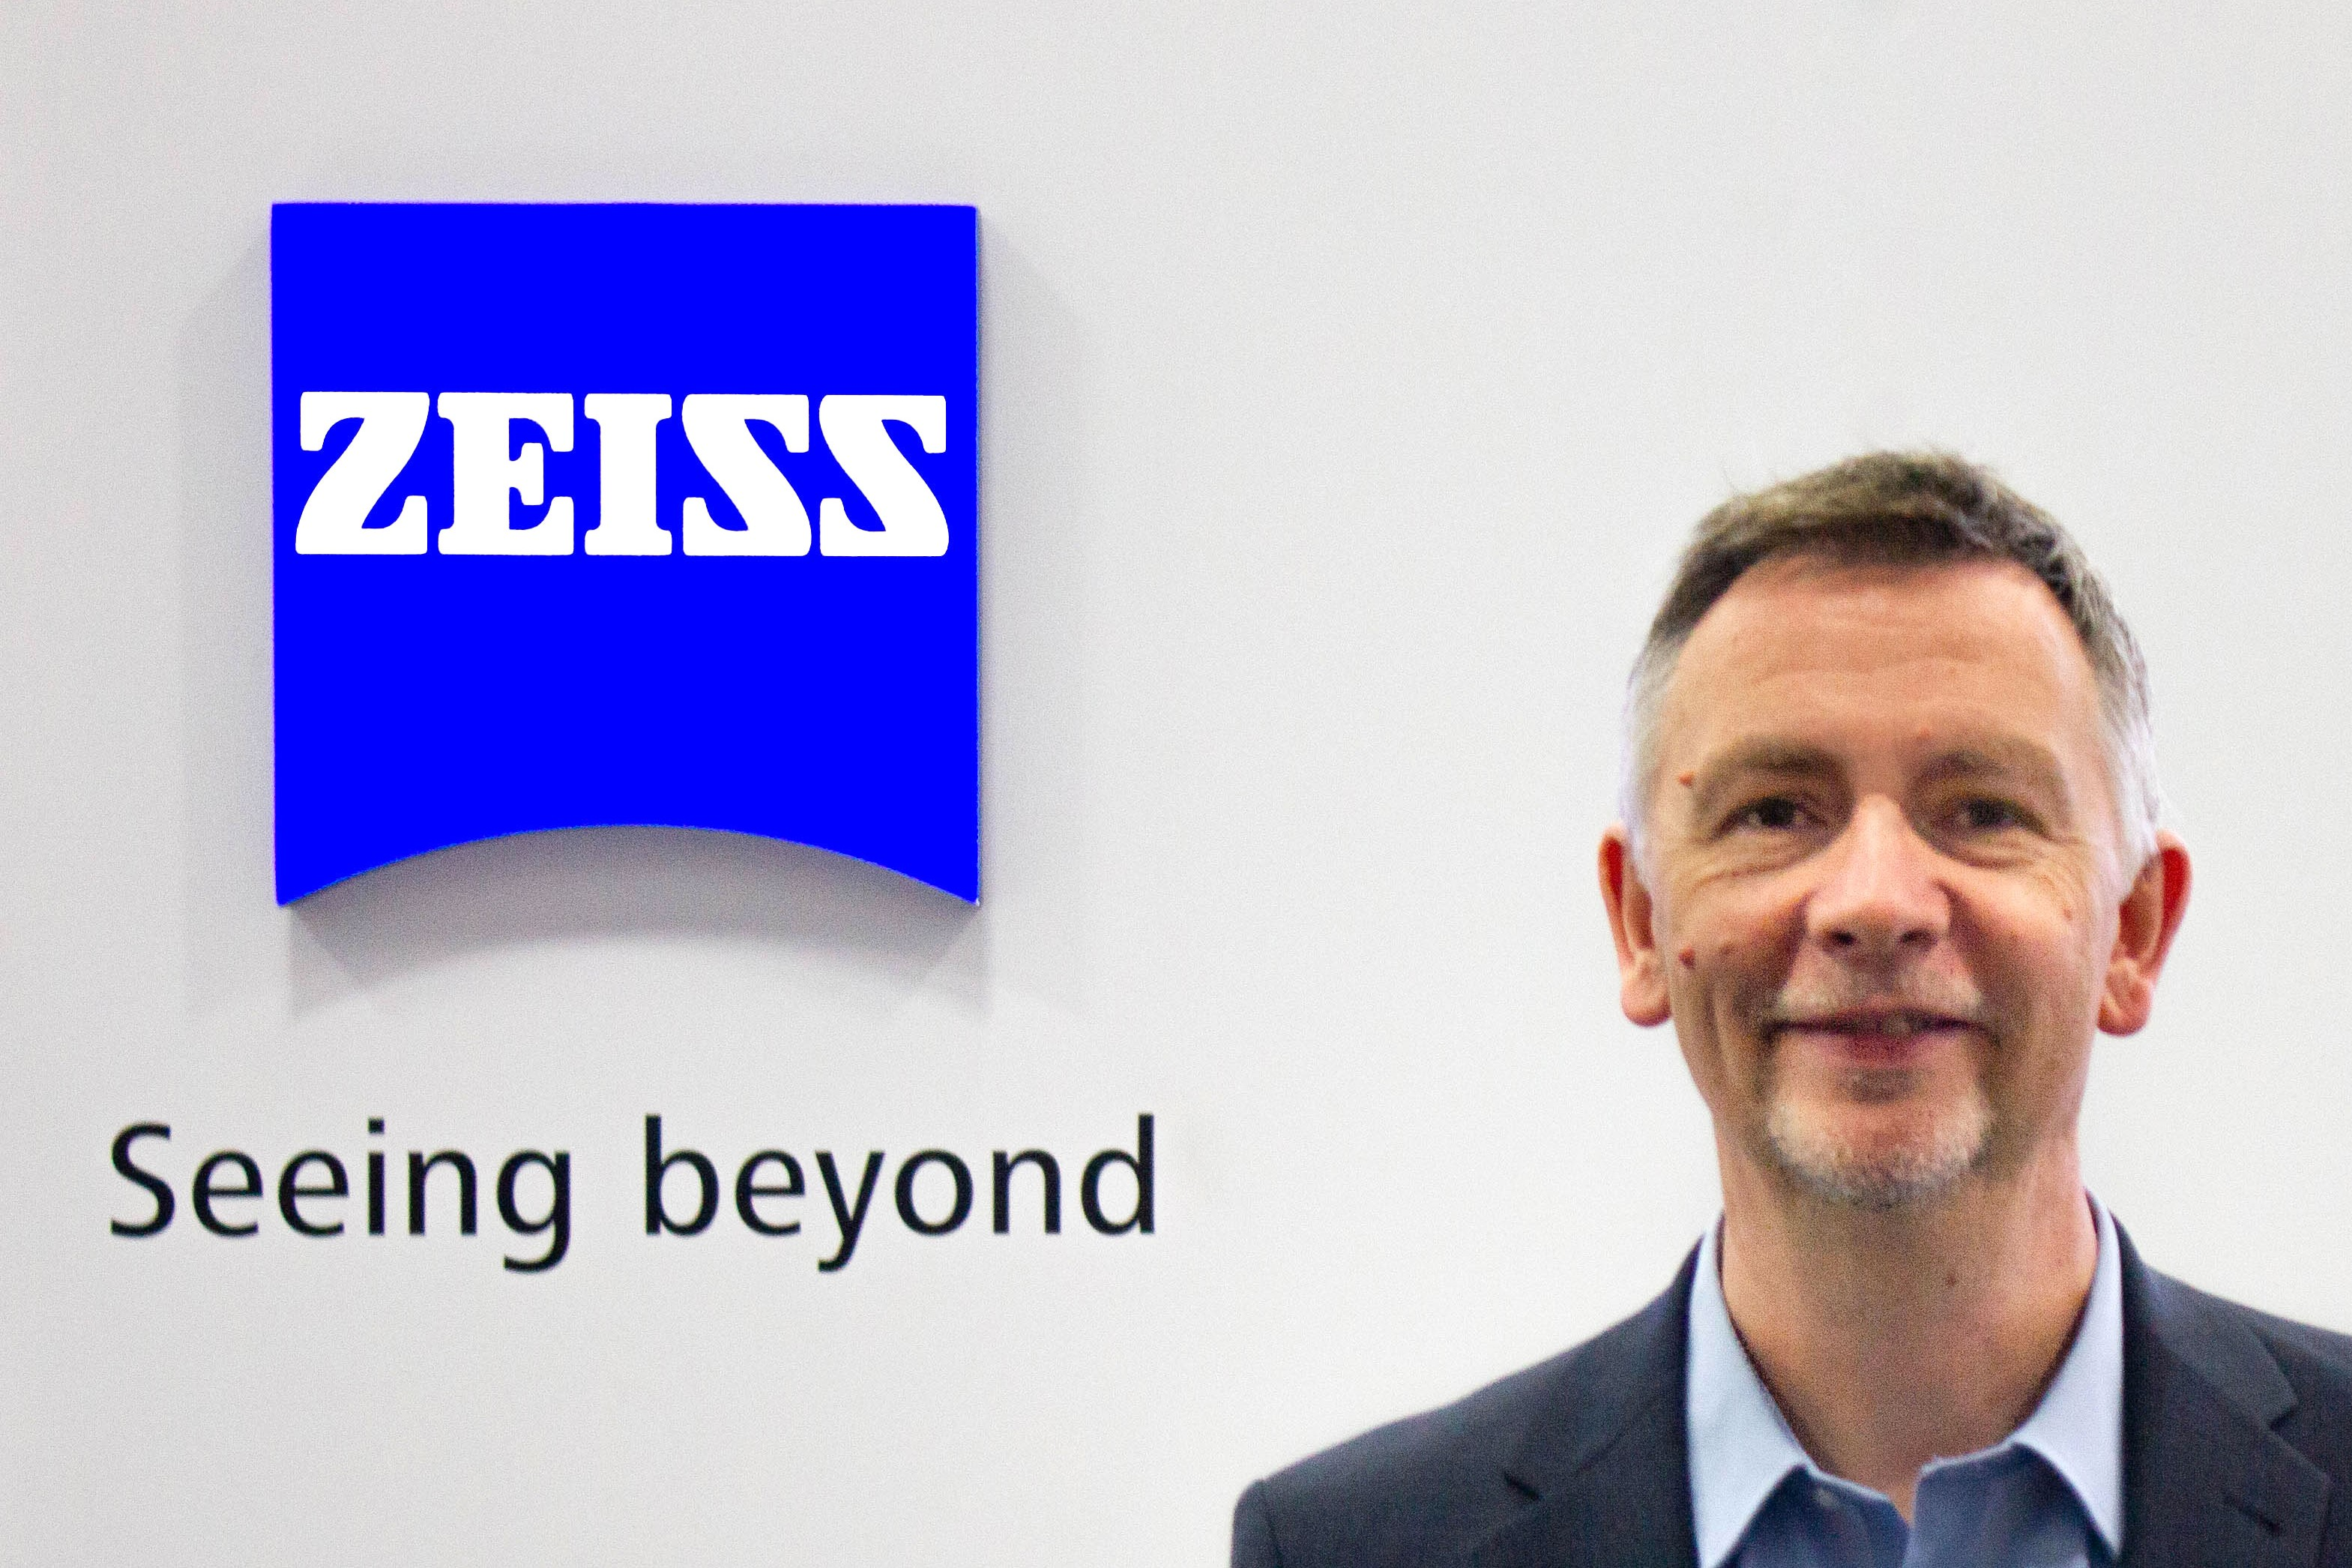 Allister McBride, Head of Materials Science at ZEISSat the ZEISS booth at M&M 2019